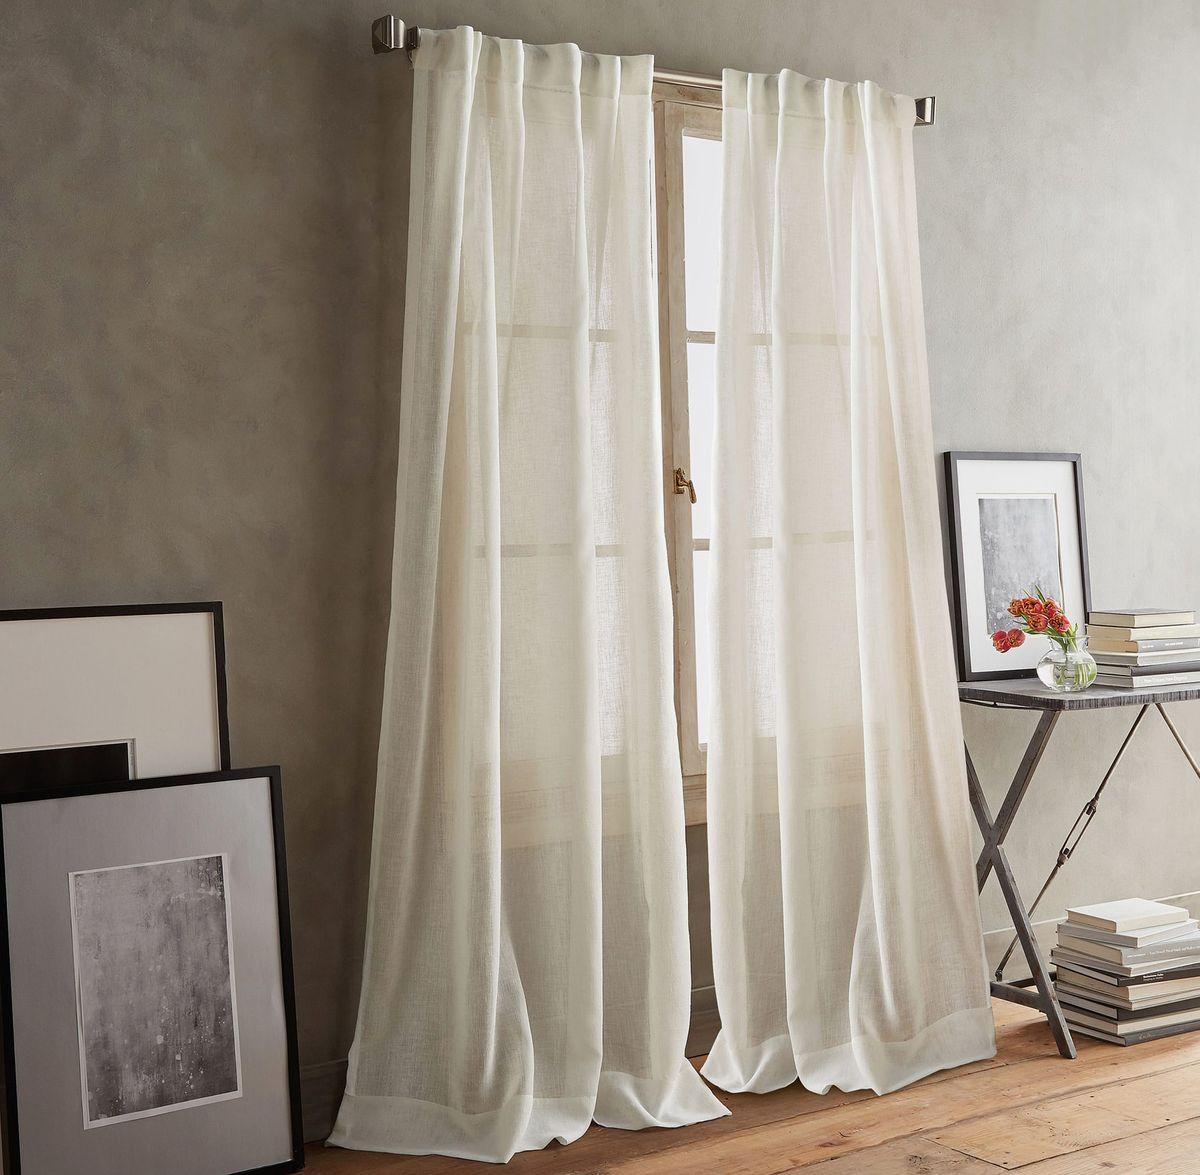 23 Best Curtains Shades Blinds Reviewed By Designers 2018 The Strategist New York Magazine